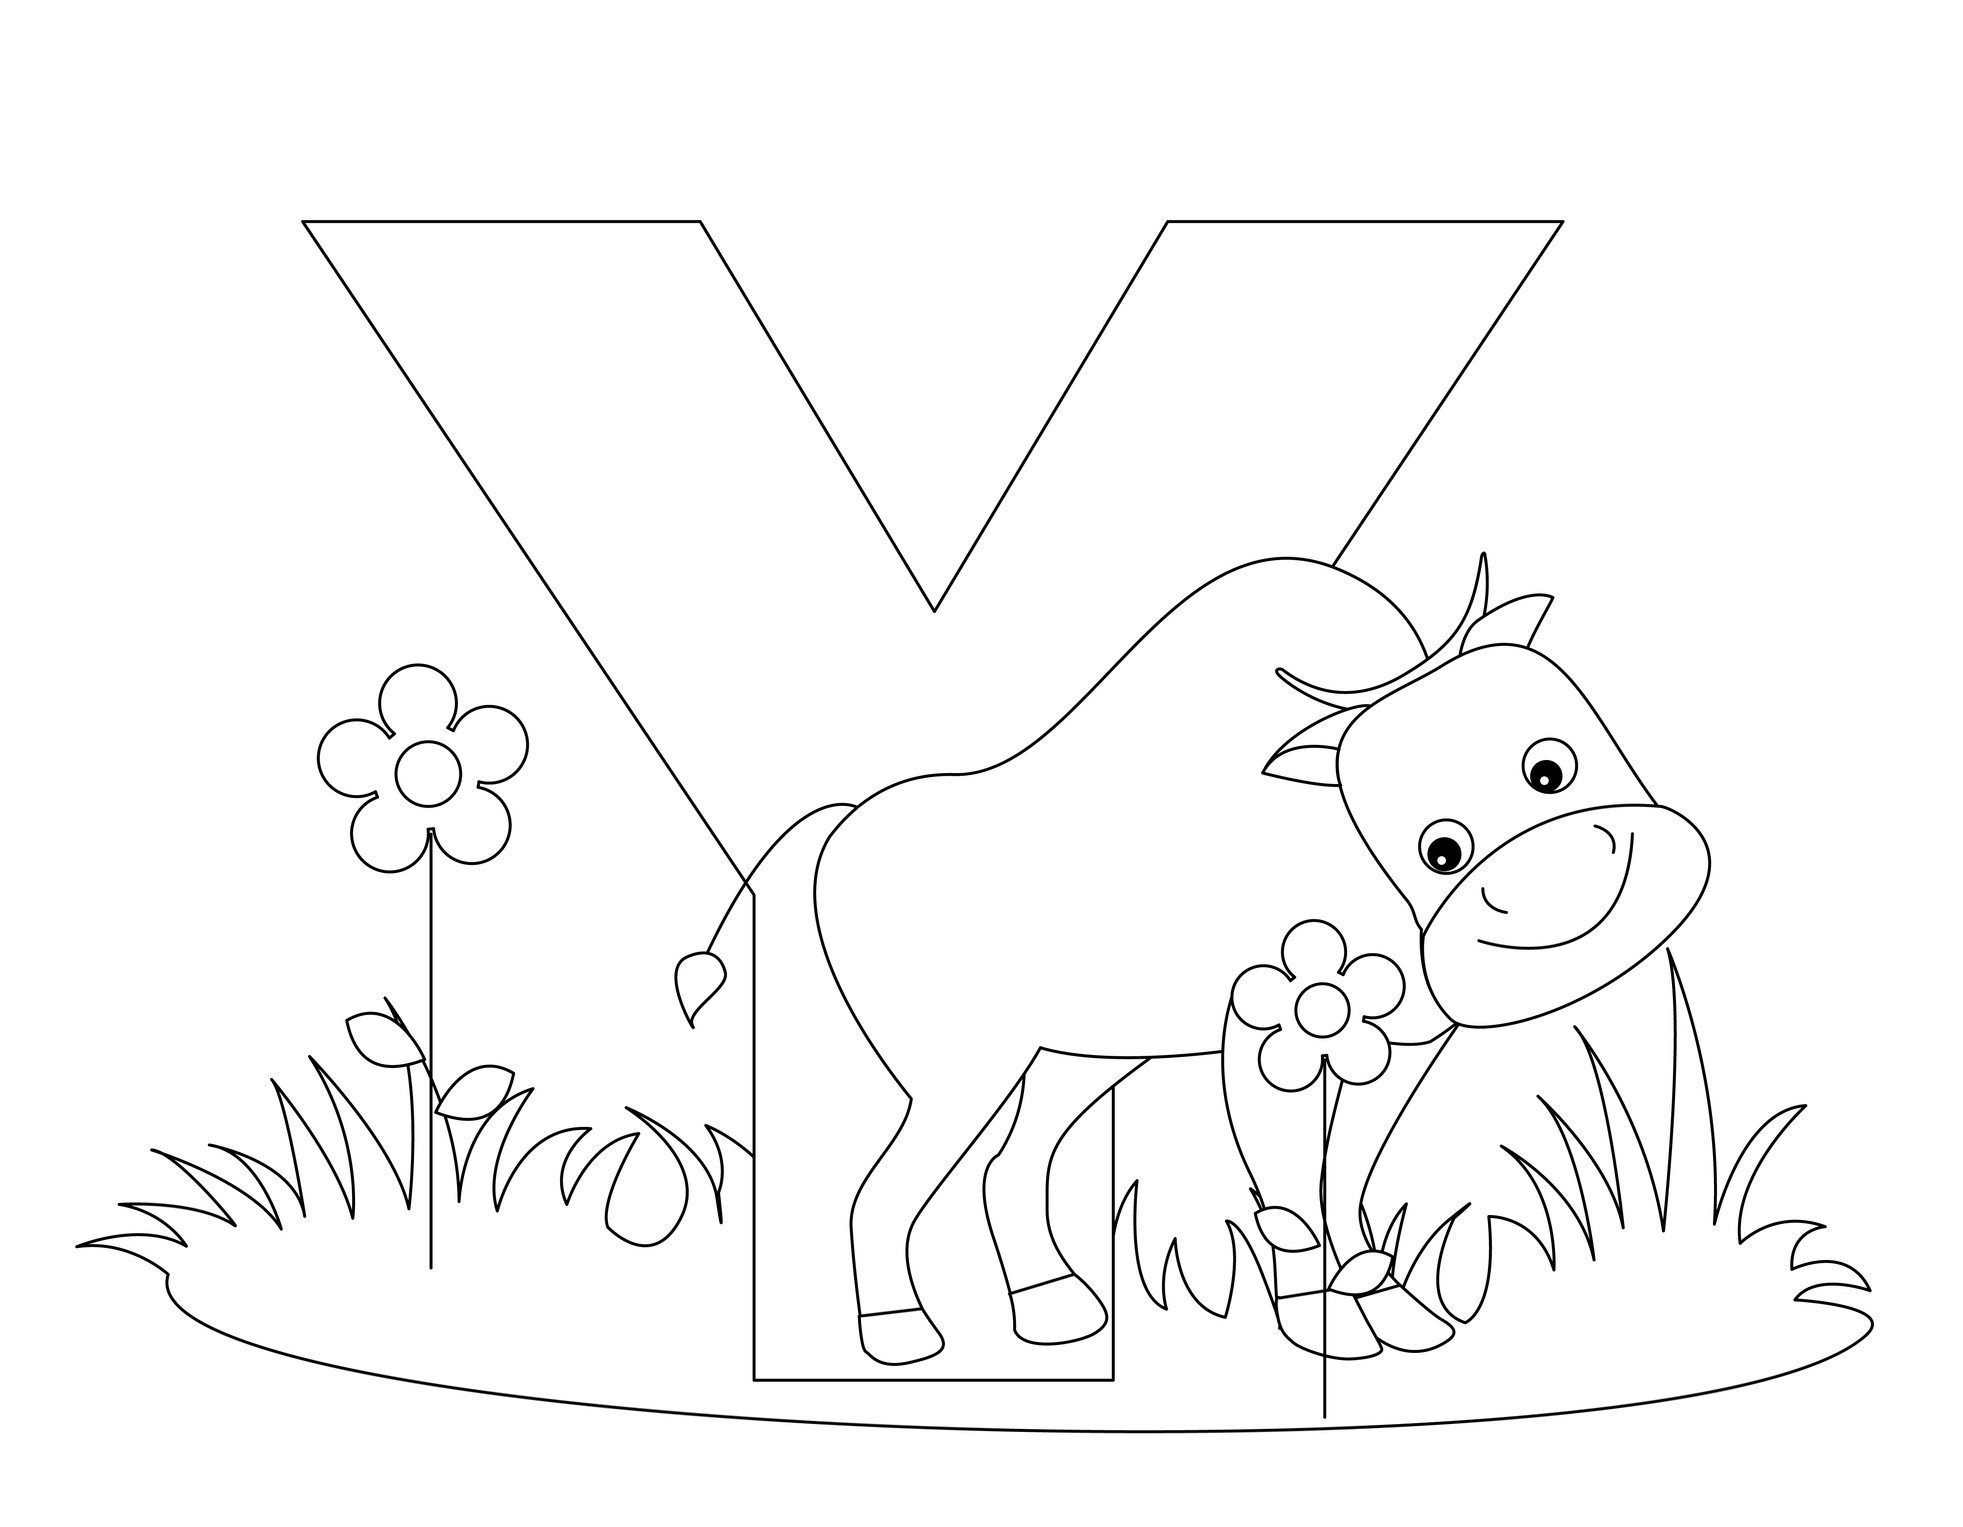 alphabet letters coloring pages n - photo#24